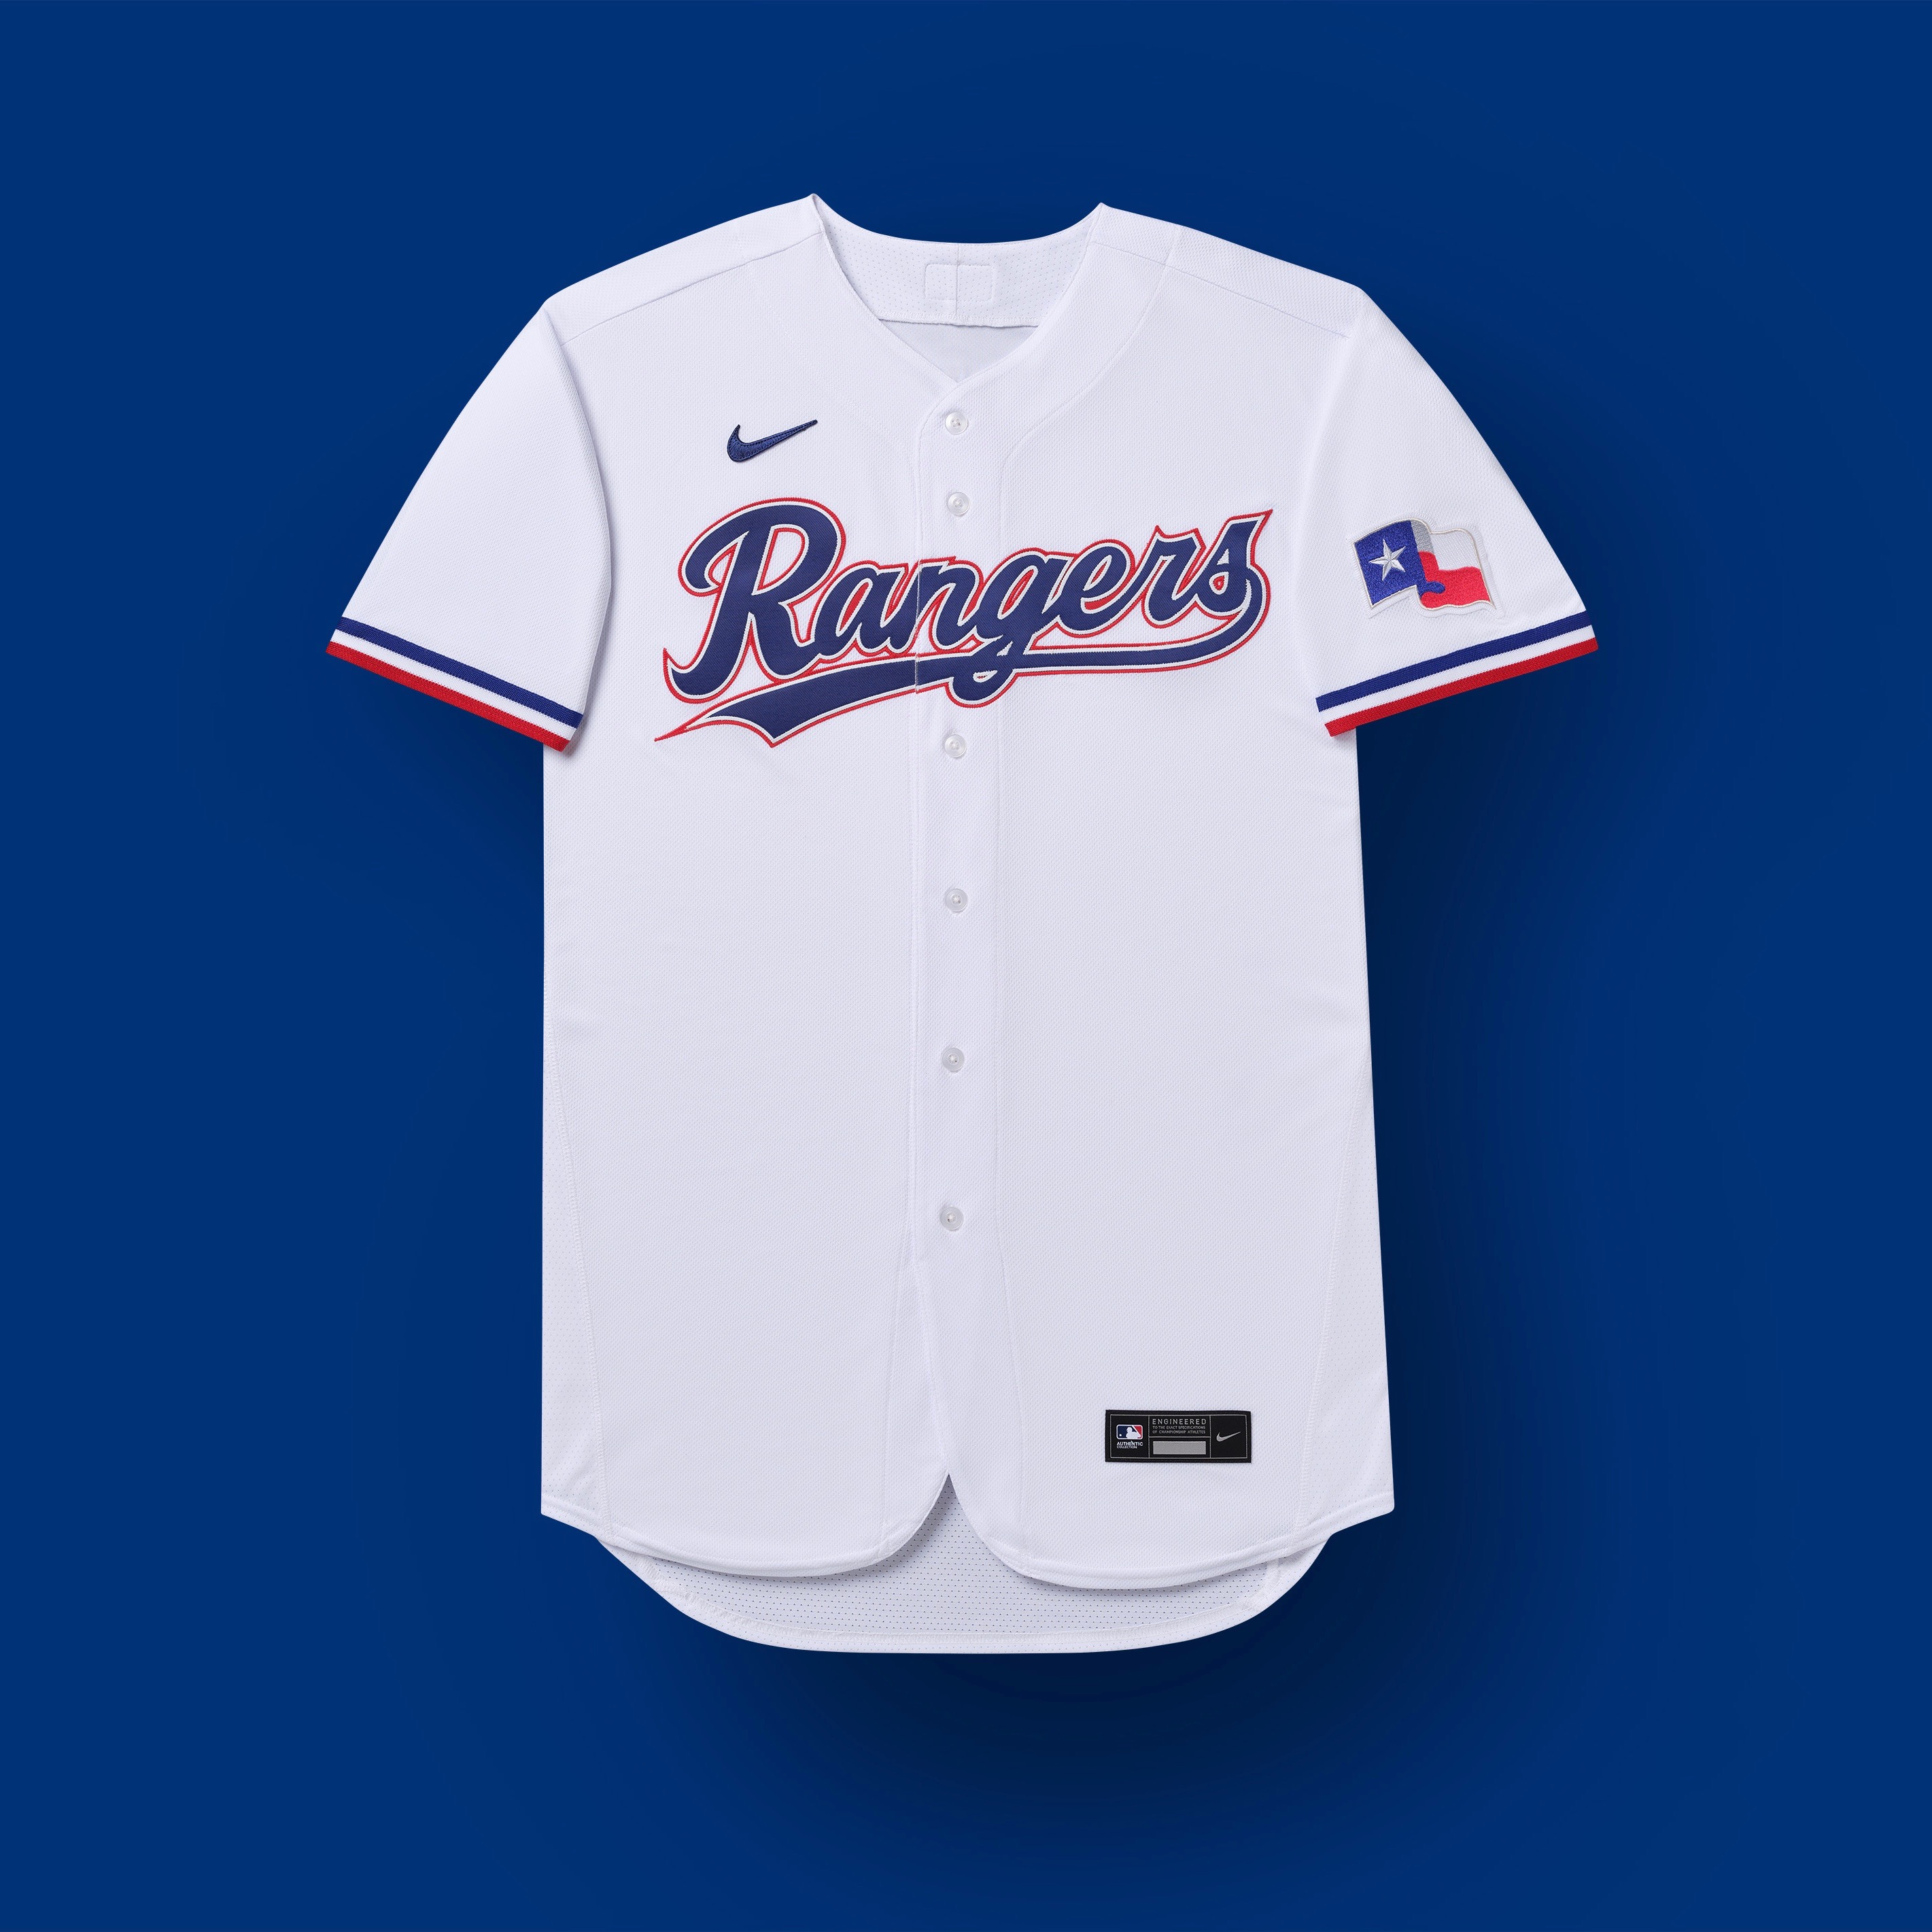 texas rangers 2020 uniforms